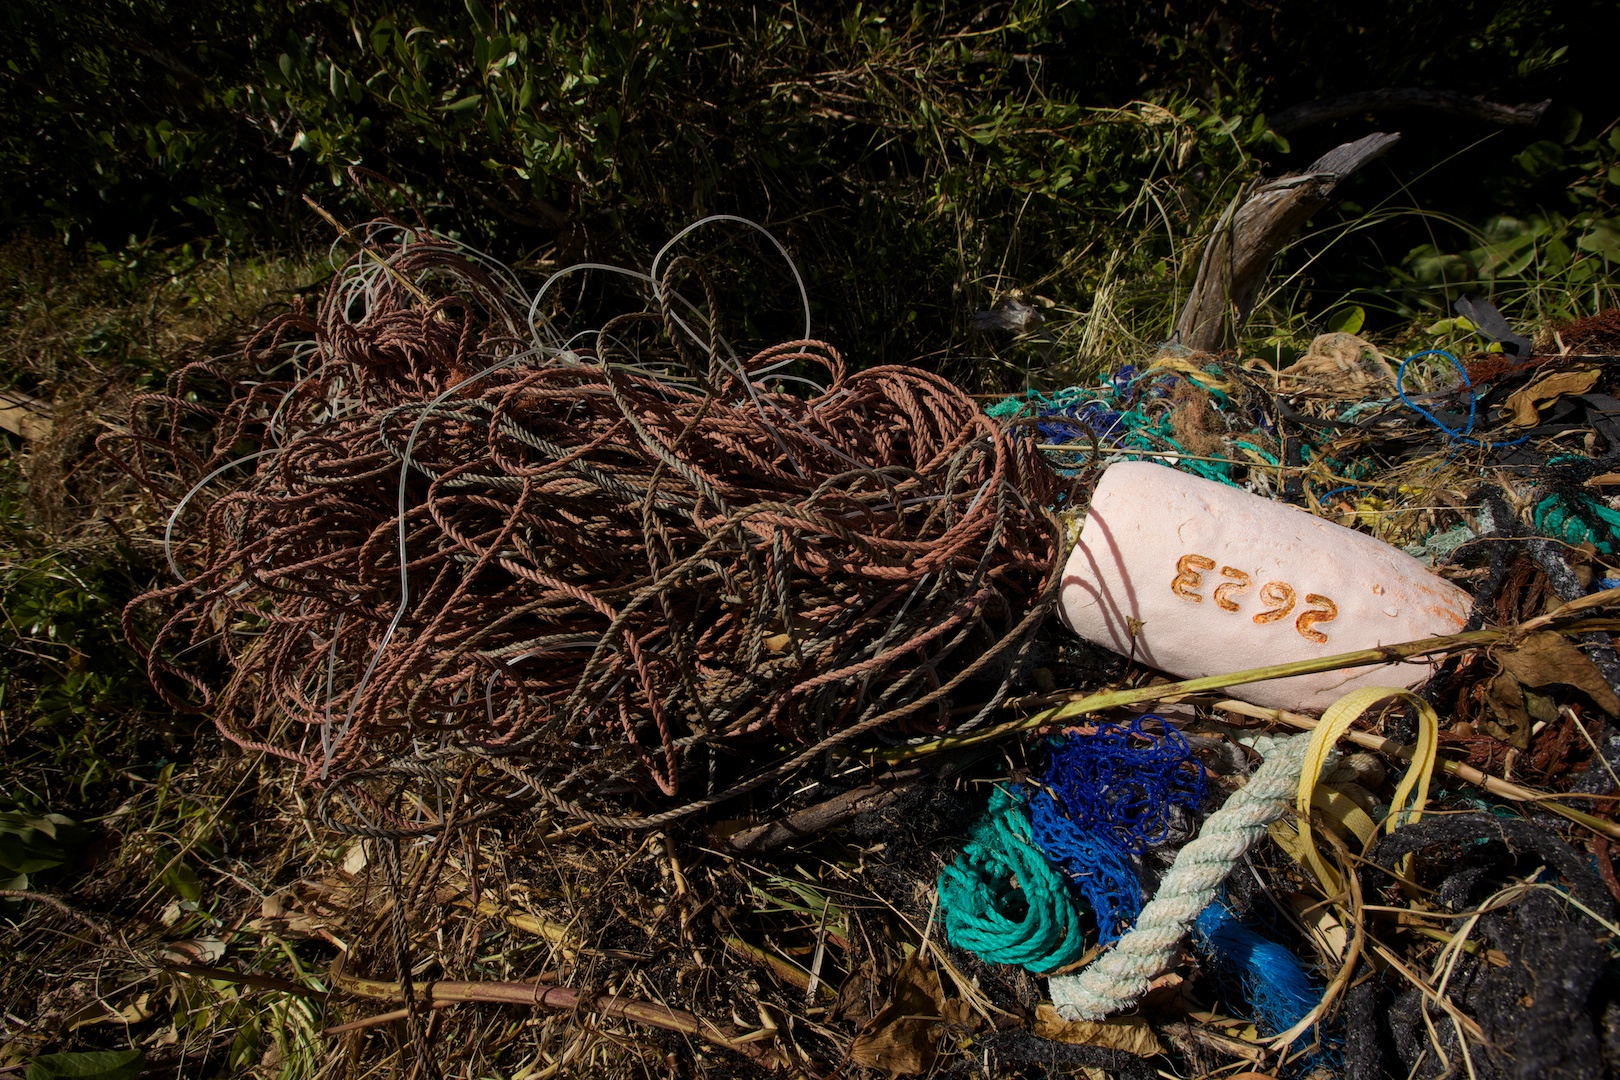 Longliner gear washed up on Nonsuch beach after hurricane Gonzalo